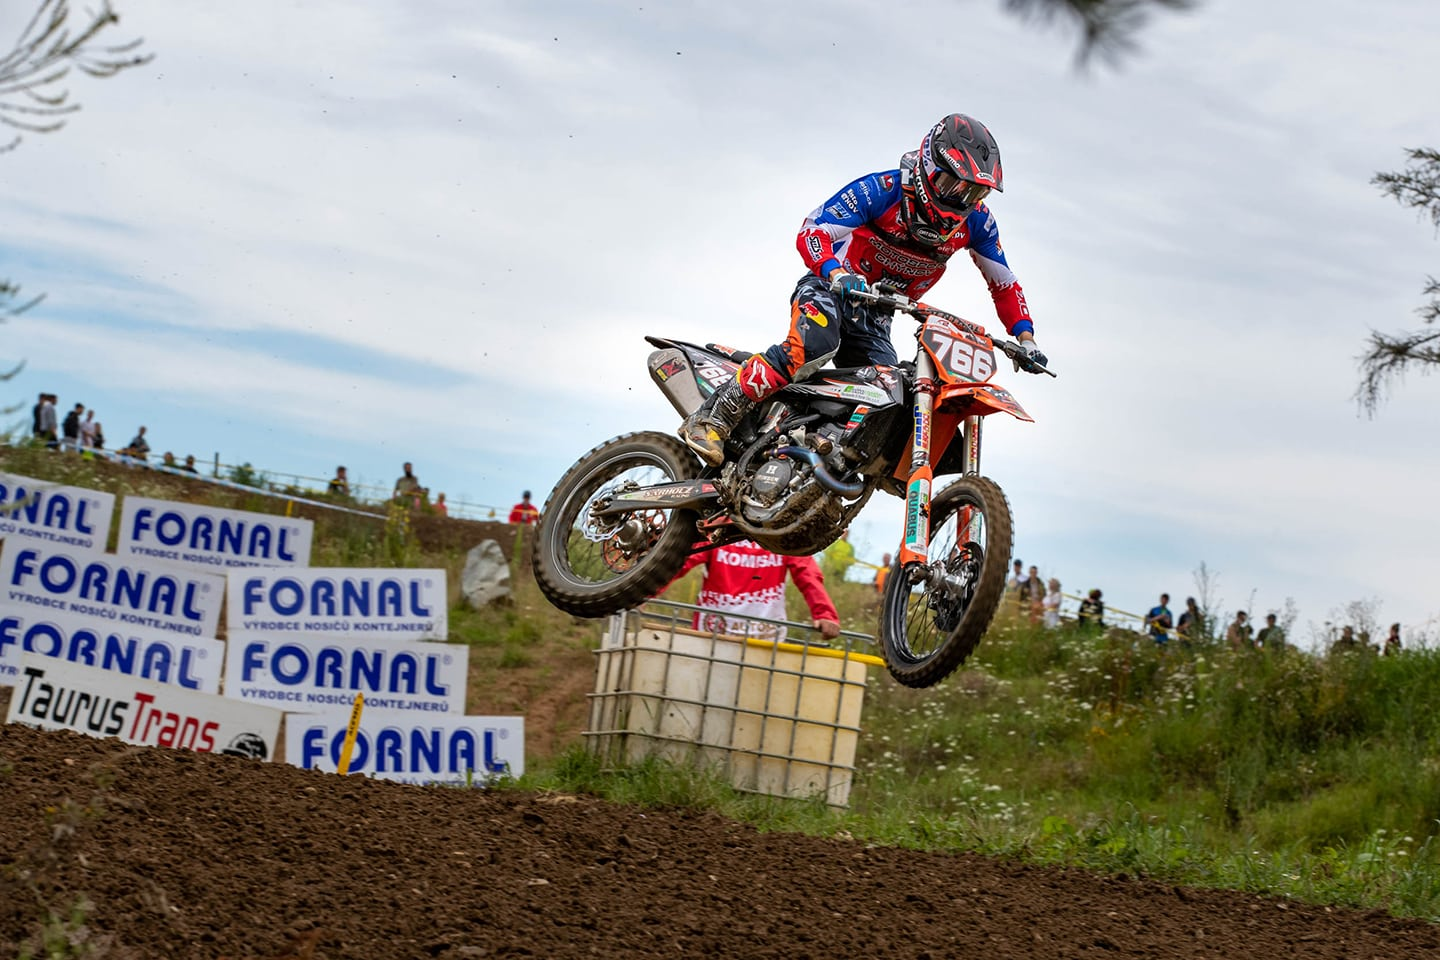 Tschechische MX-Meisterschaft in Jinin - Michael Sandner